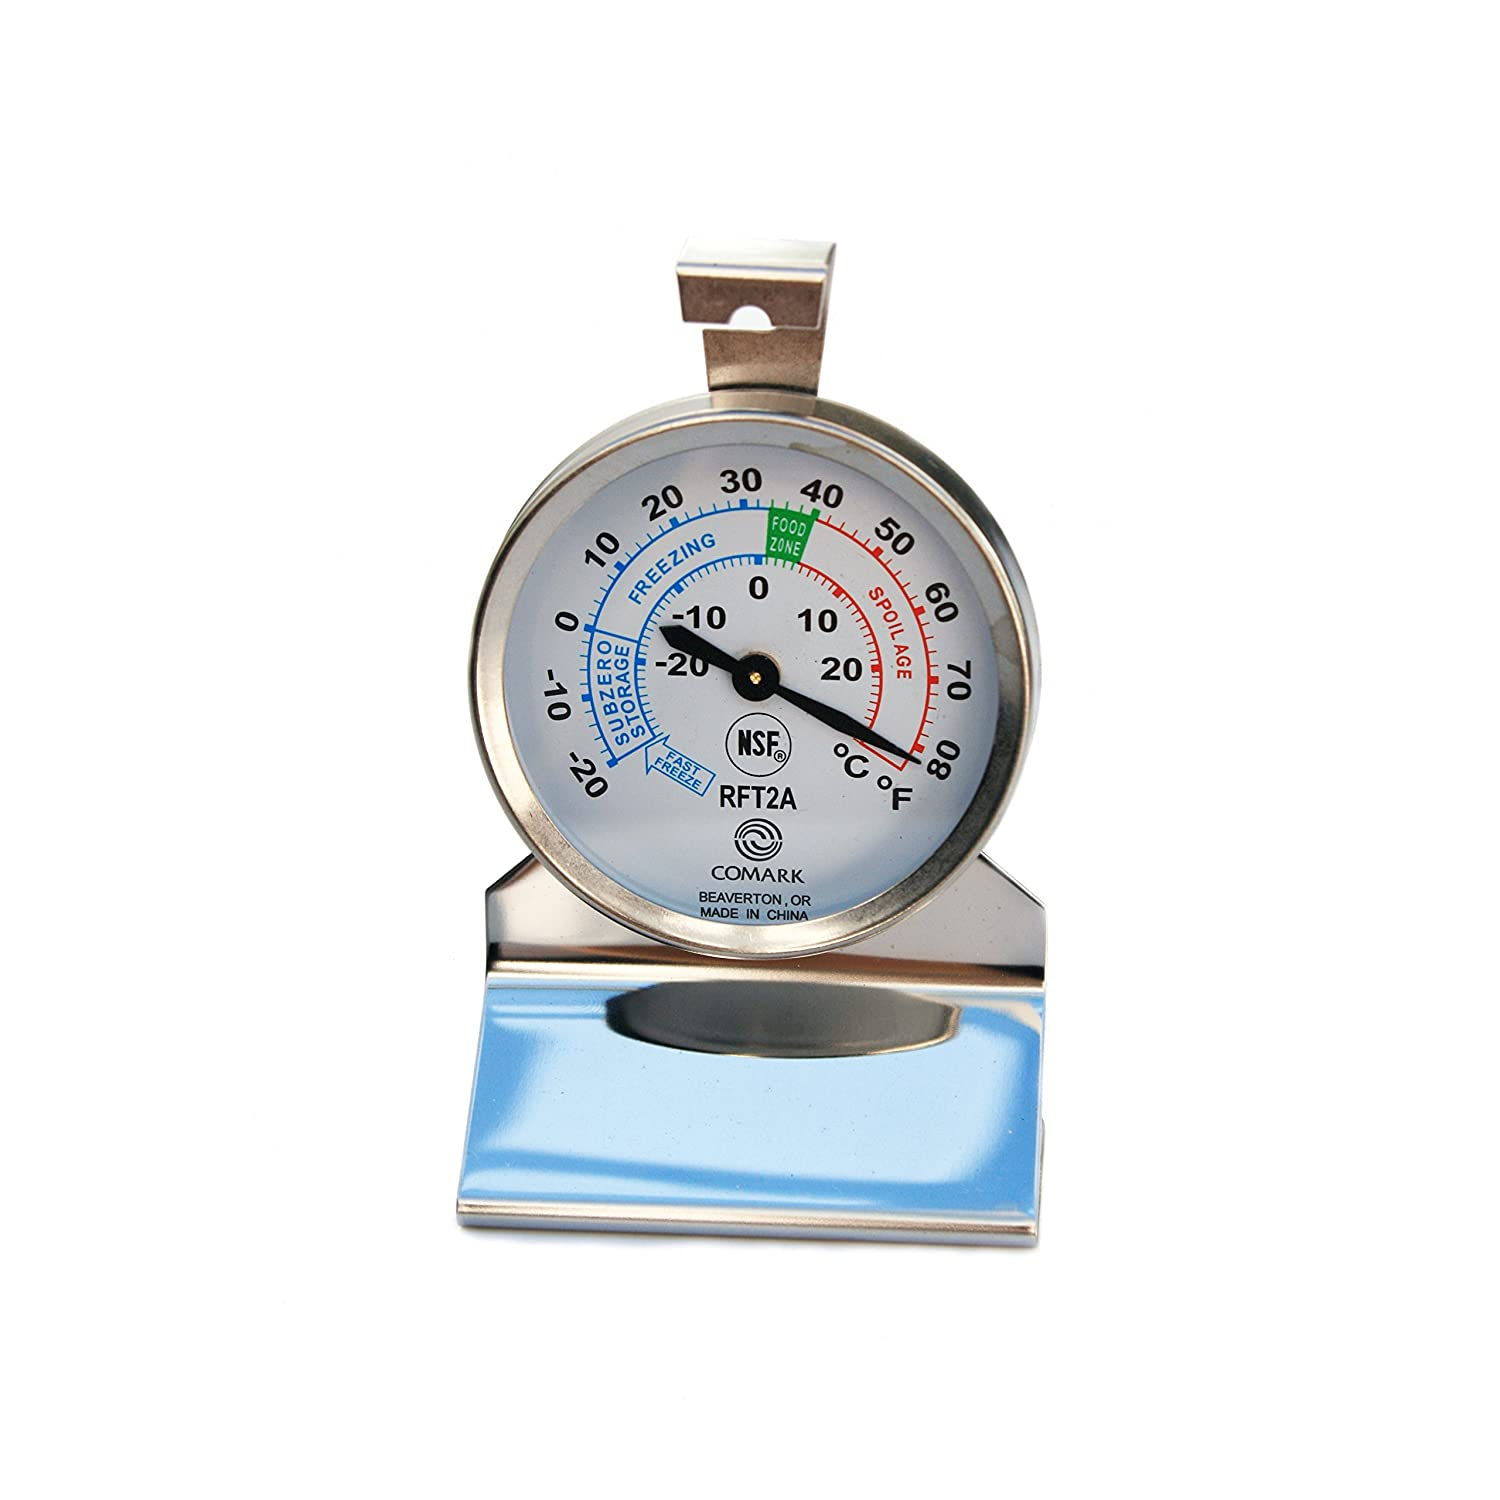 Comark Instruments | RFT2AK | Stainless Steel Refrigerator/Freezer Thermometer